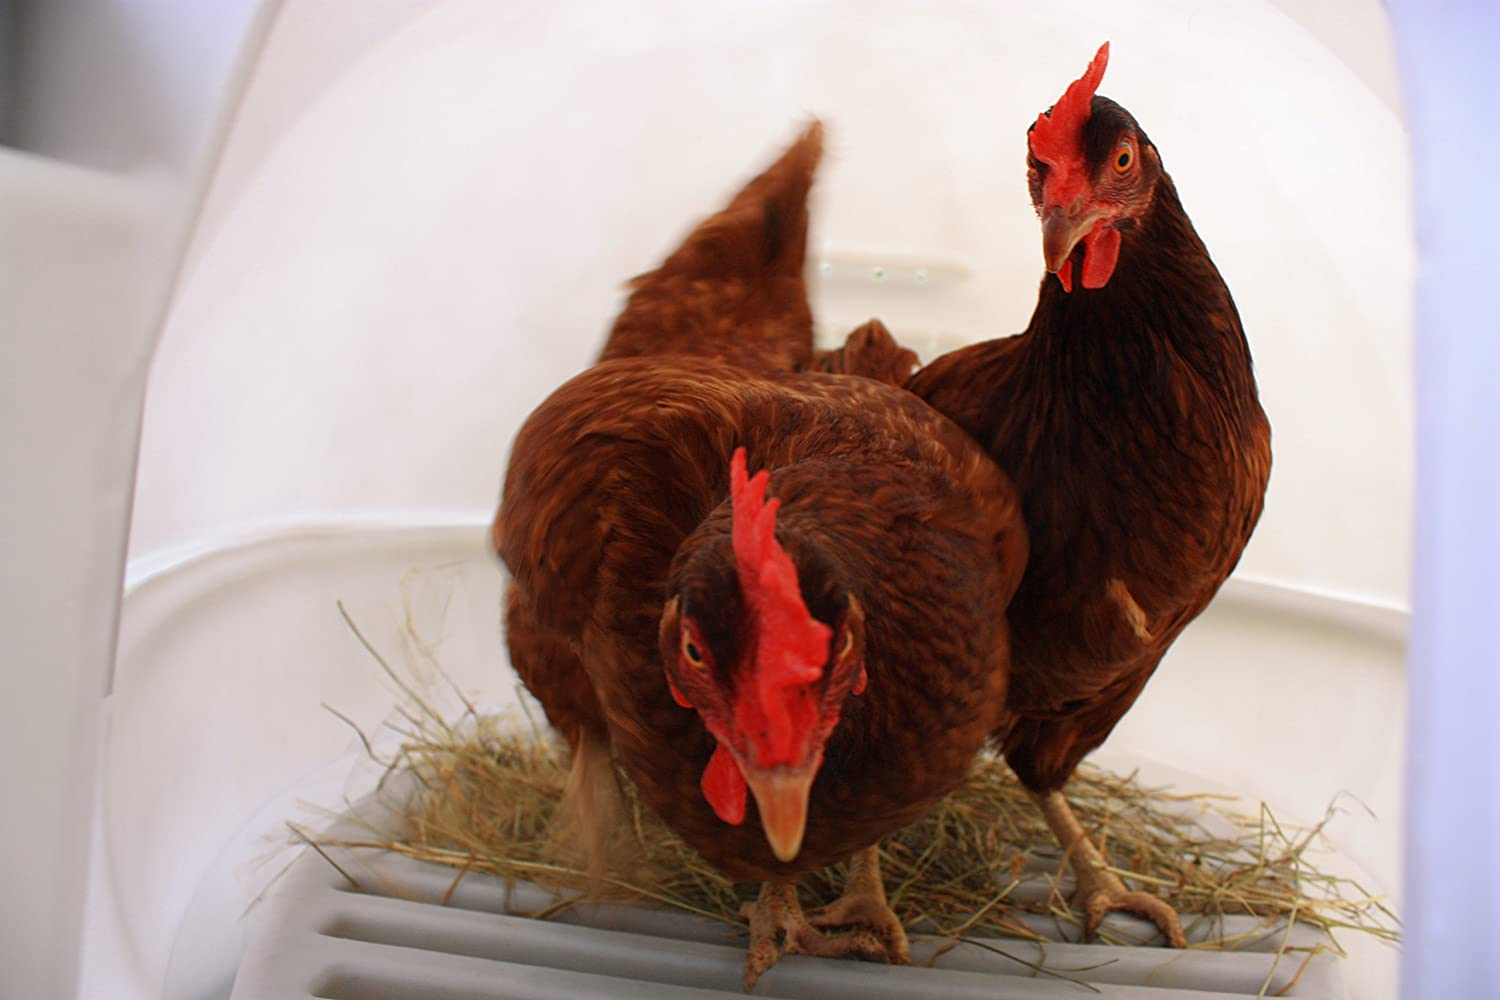 Galline all'interno del pollaio innovativo Eglu